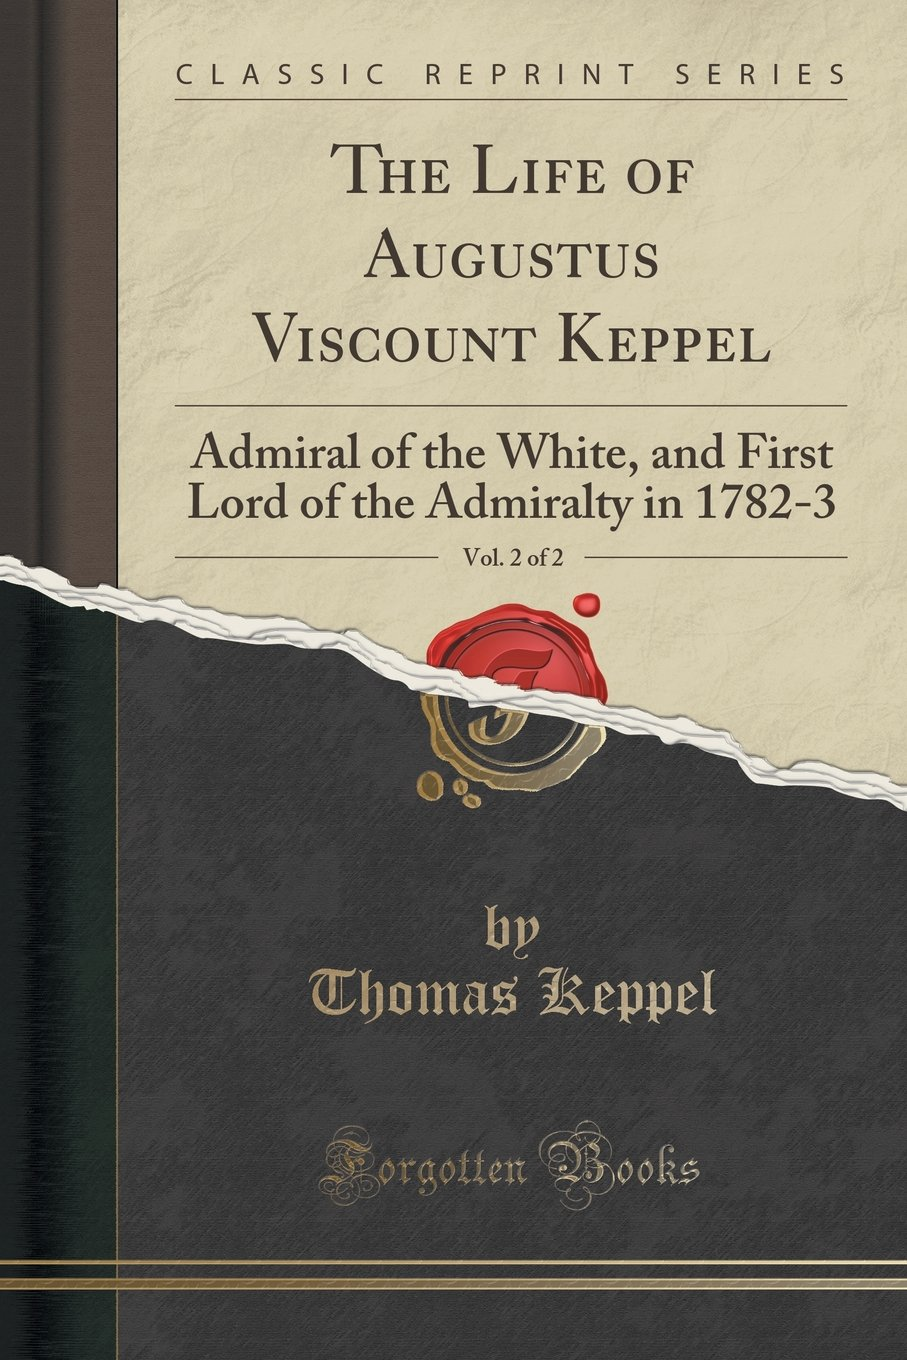 Download The Life of Augustus Viscount Keppel, Vol. 2 of 2: Admiral of the White, and First Lord of the Admiralty in 1782-3 (Classic Reprint) pdf